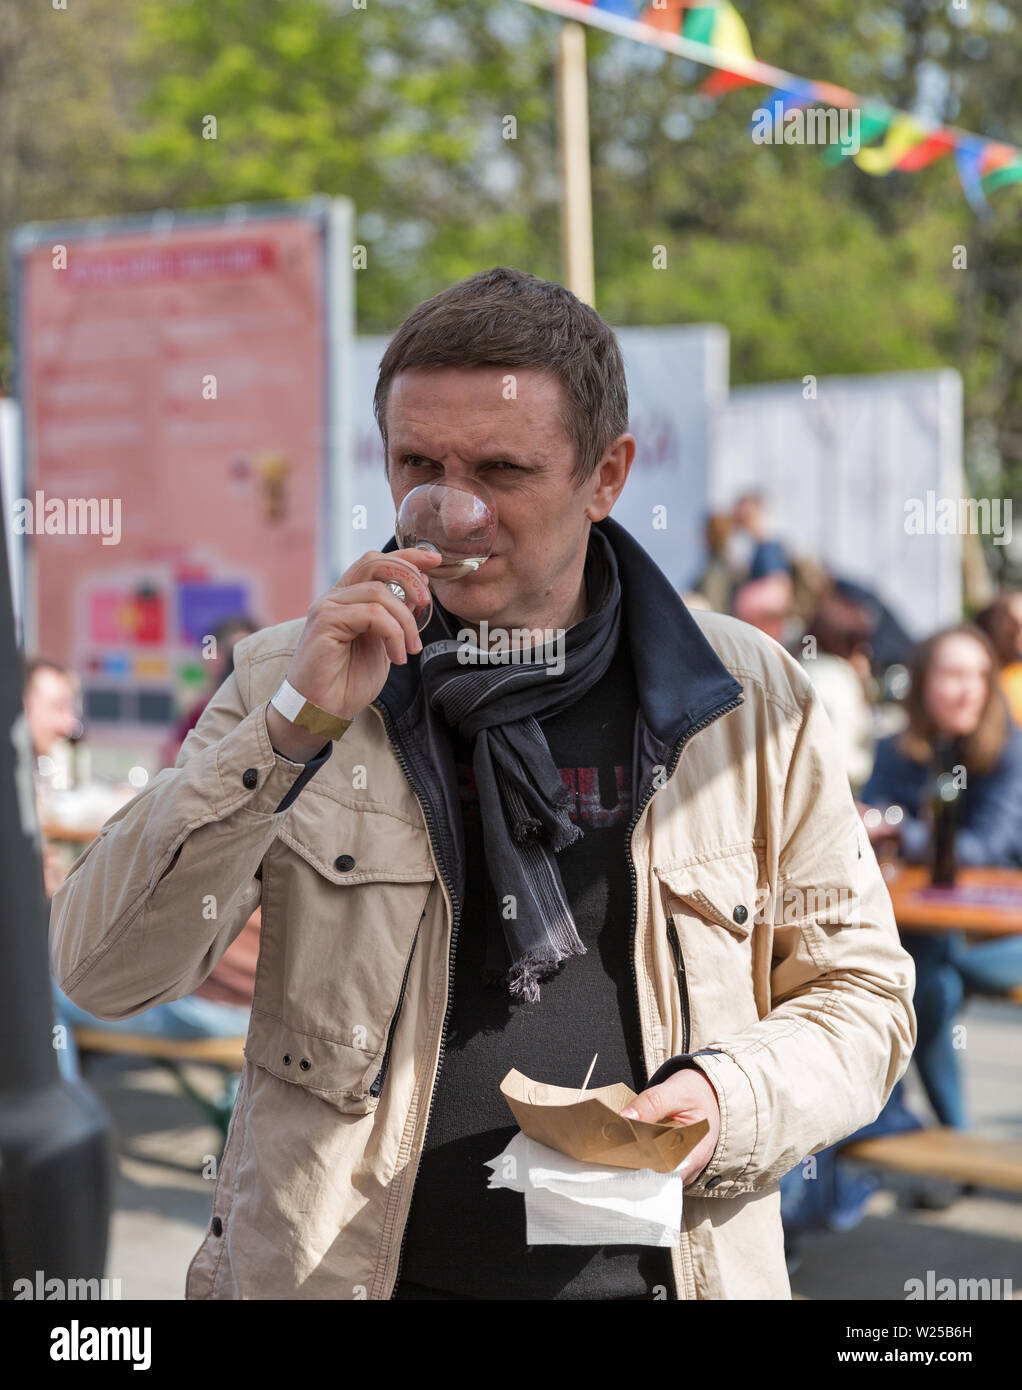 KYIV, UKRAINE - APRIL 21, 2019: People tasting wine during Food and Wine Festival in National Expocenter, a permanent multi-purpose exhibition complex Stock Photo